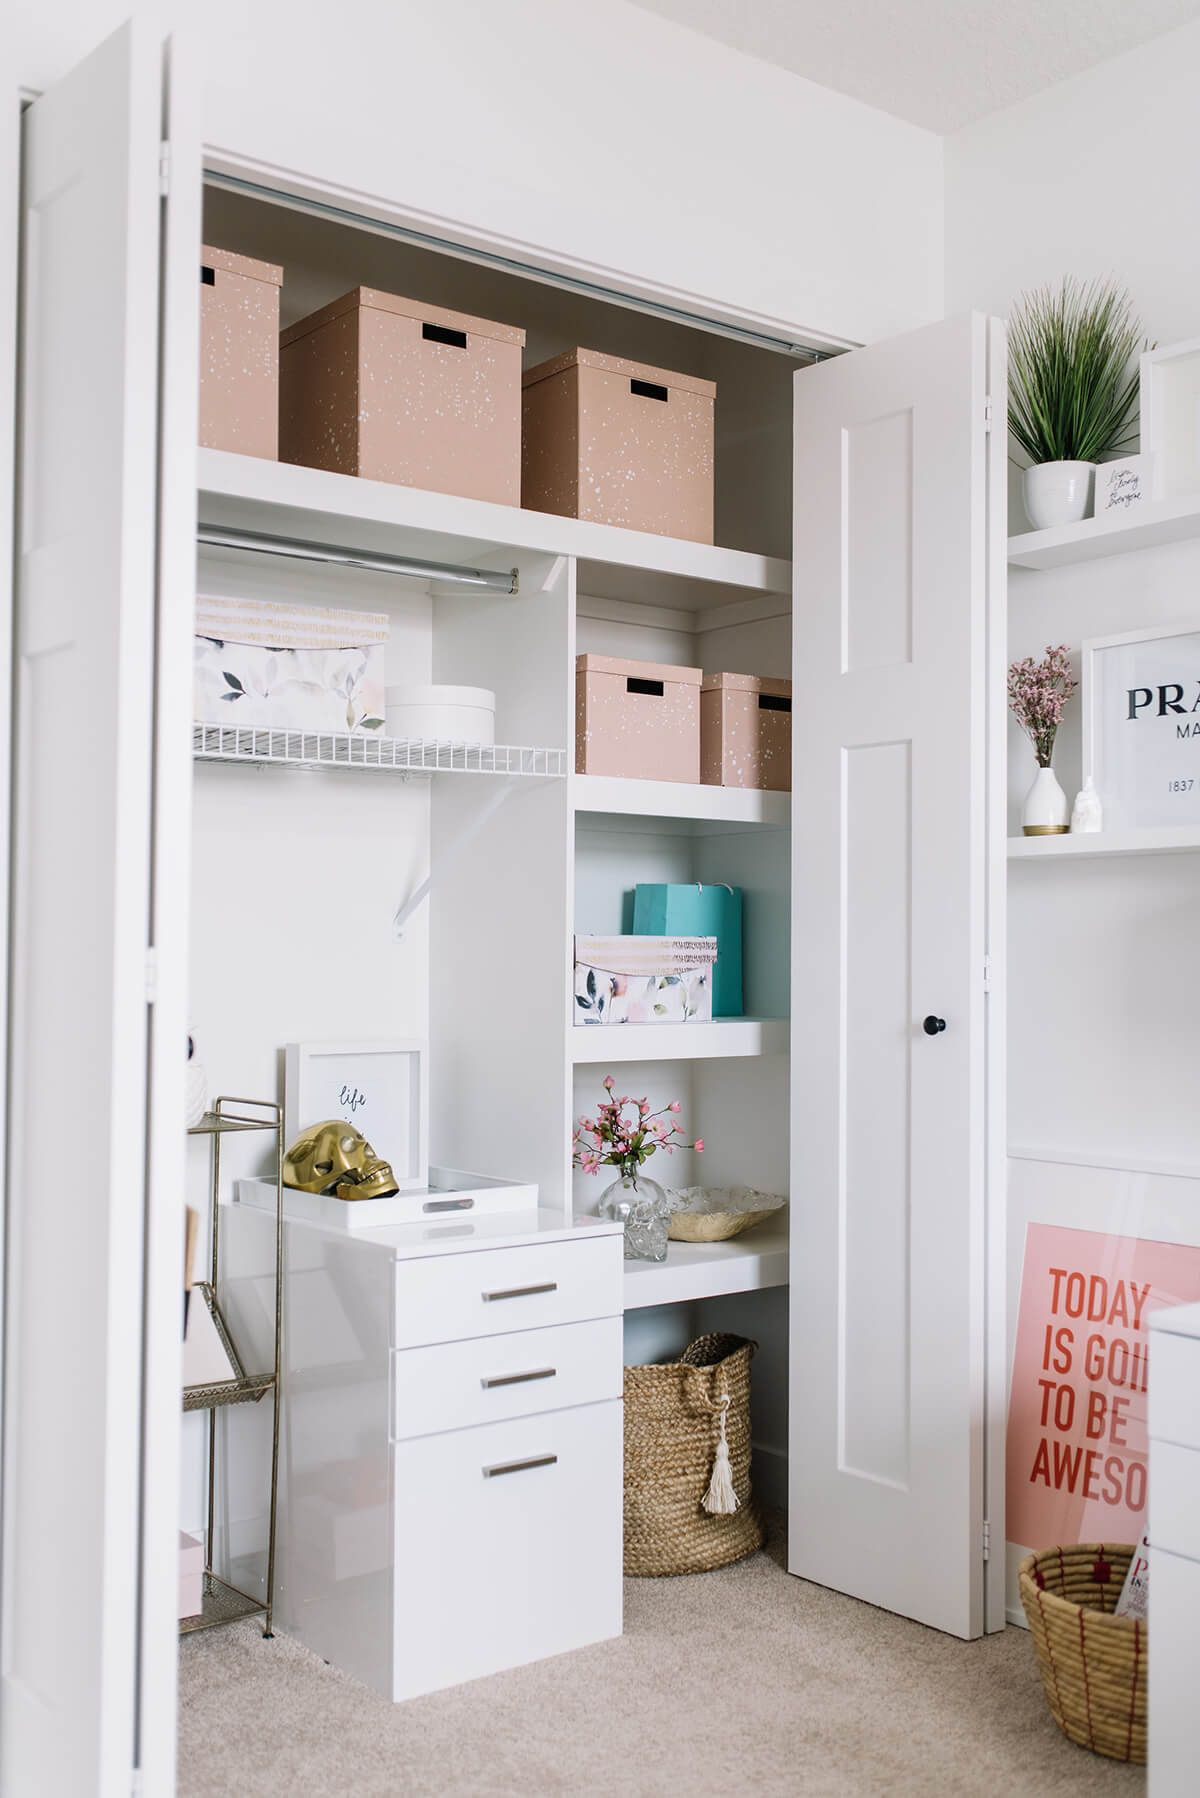 14 Genius Home Office Organization Ideas To Create The Perfect Workspace Home Office Closet Closet Office Organization Office Organization Tips